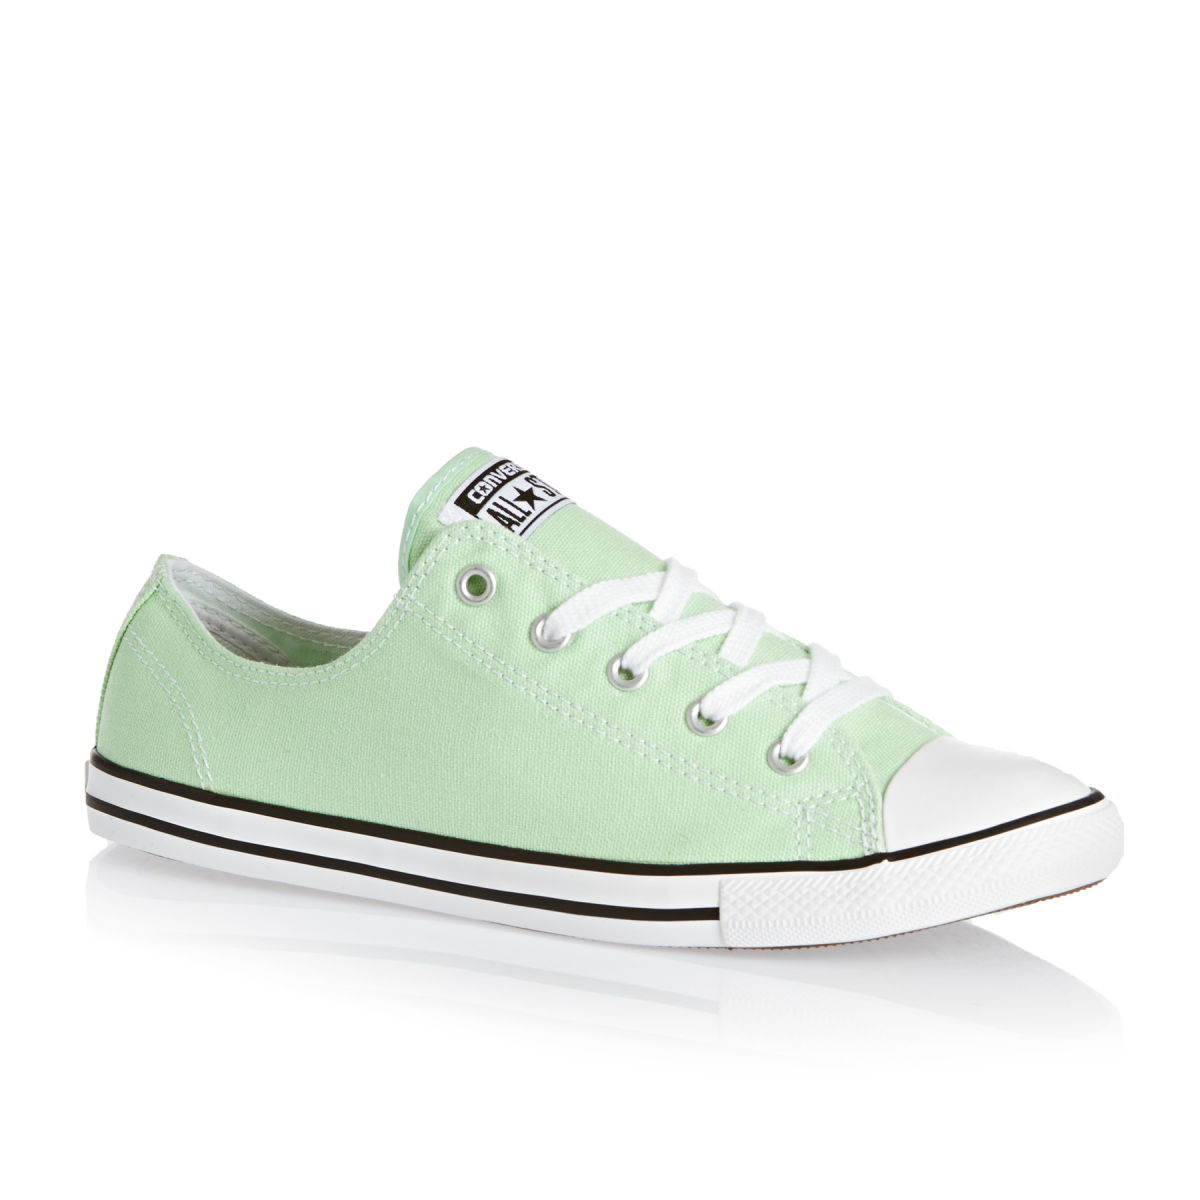 6aa950d95316 Converse Chuck Taylor All Star Dainty Shoes - Mint Julep white black